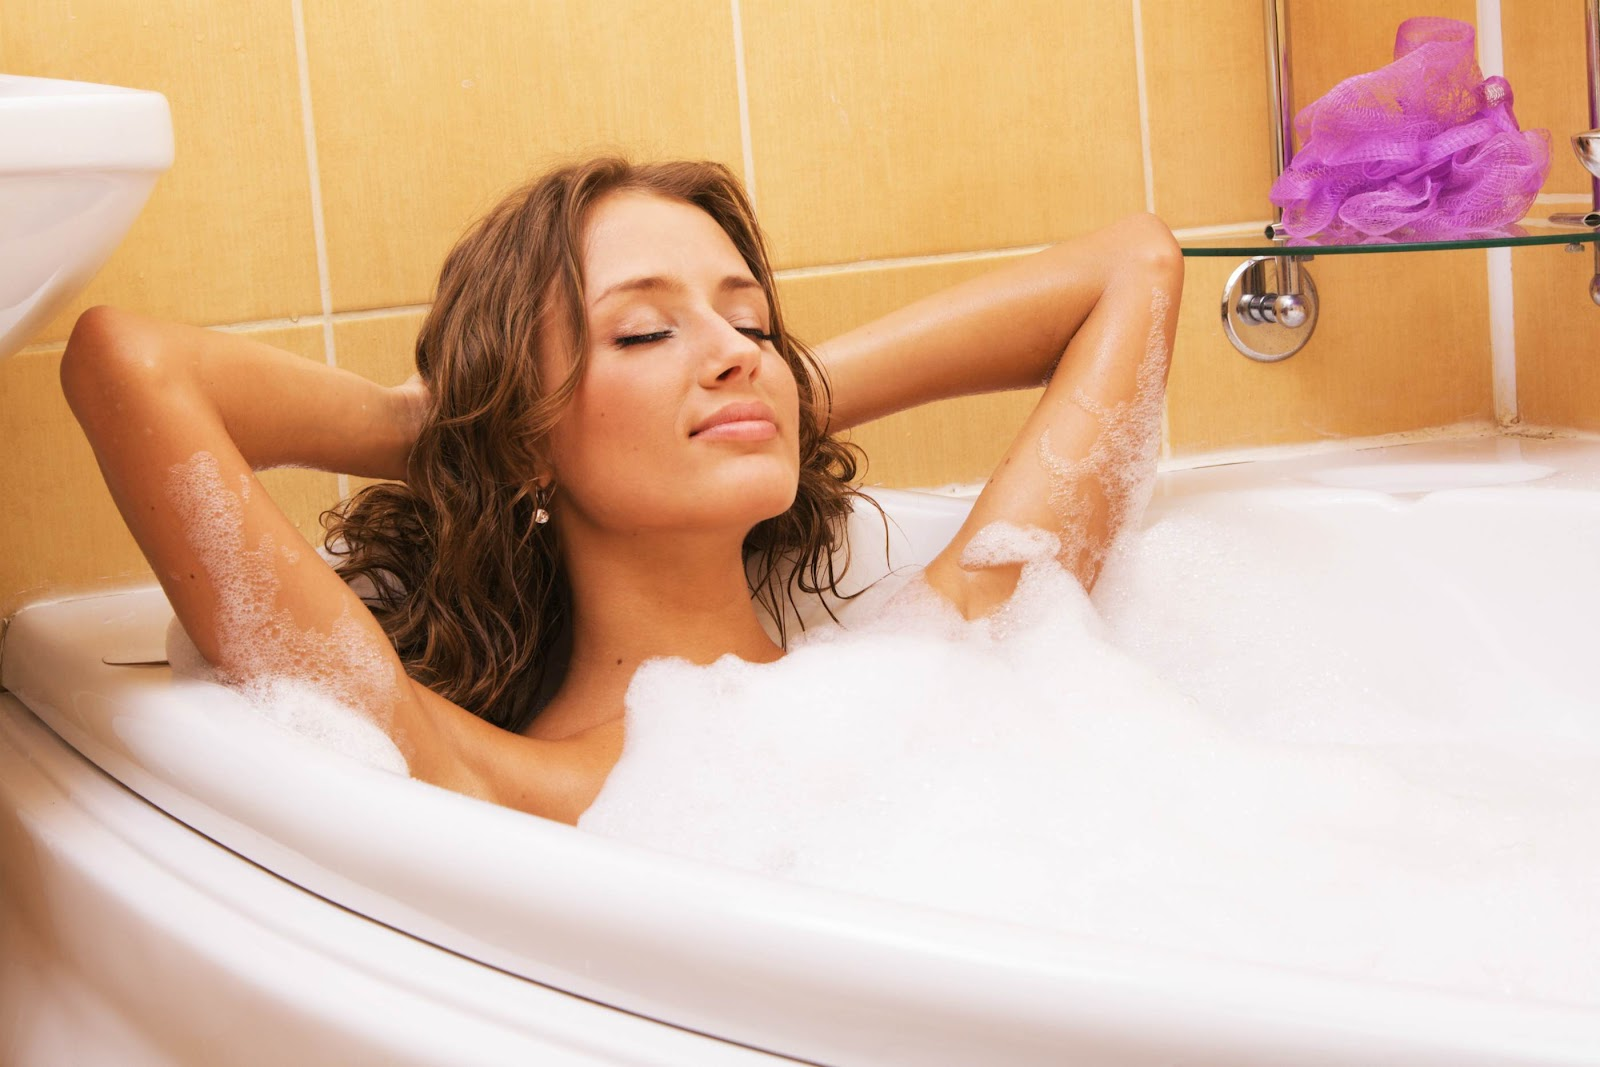 Love healthy boundaries aromatherapy bubble bath